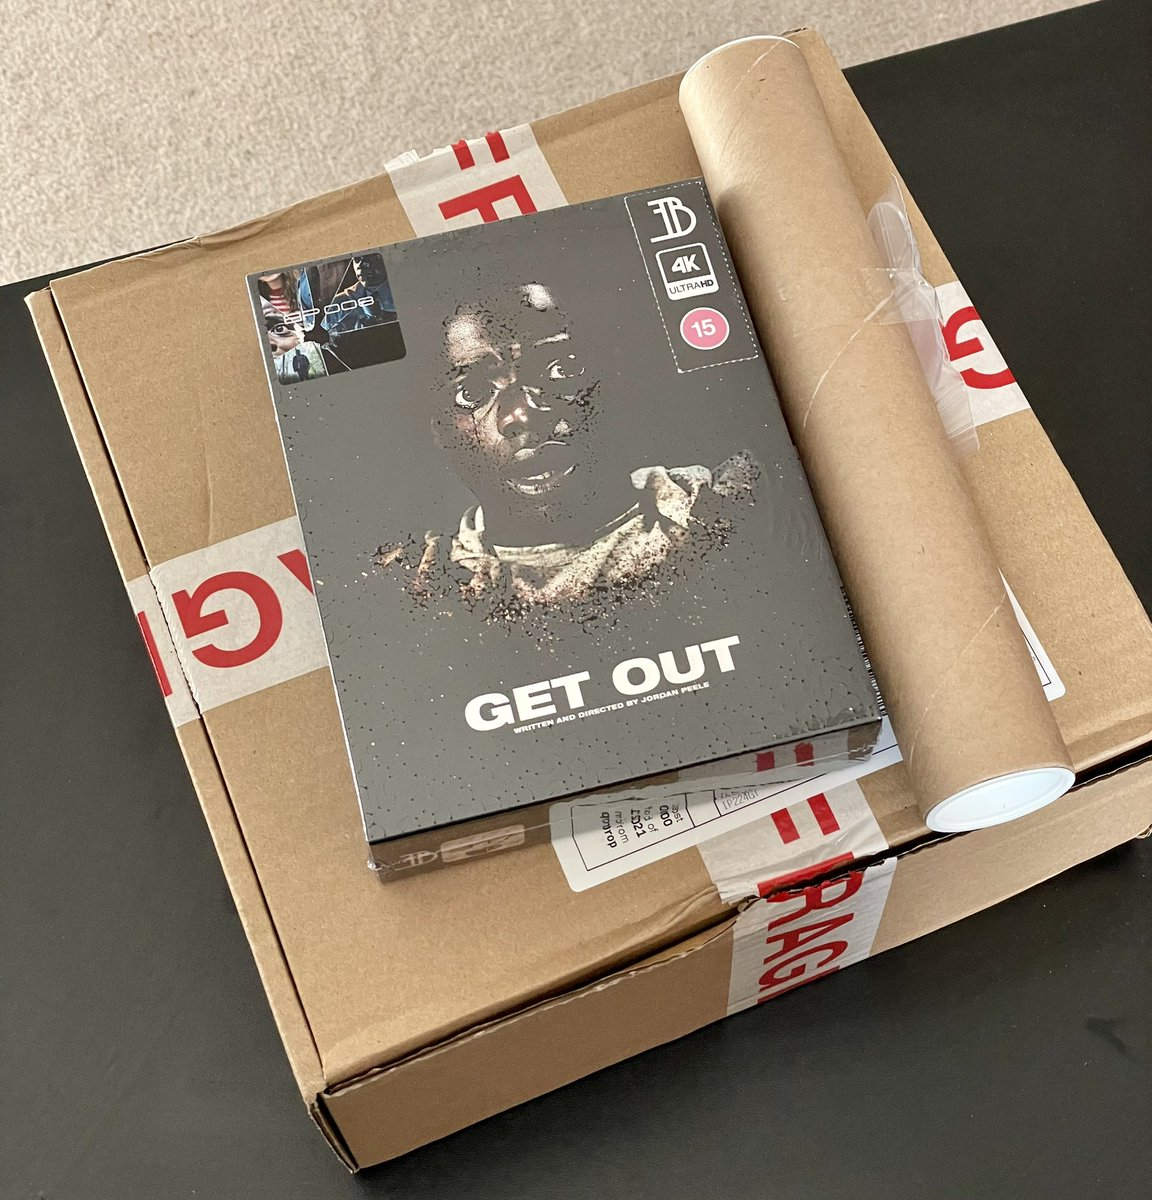 #NewIn today from @EveryThingBlu91 #GetOut #BluPack Some amazing detail on the slip on this release with all the extras being of the highest quality as always!